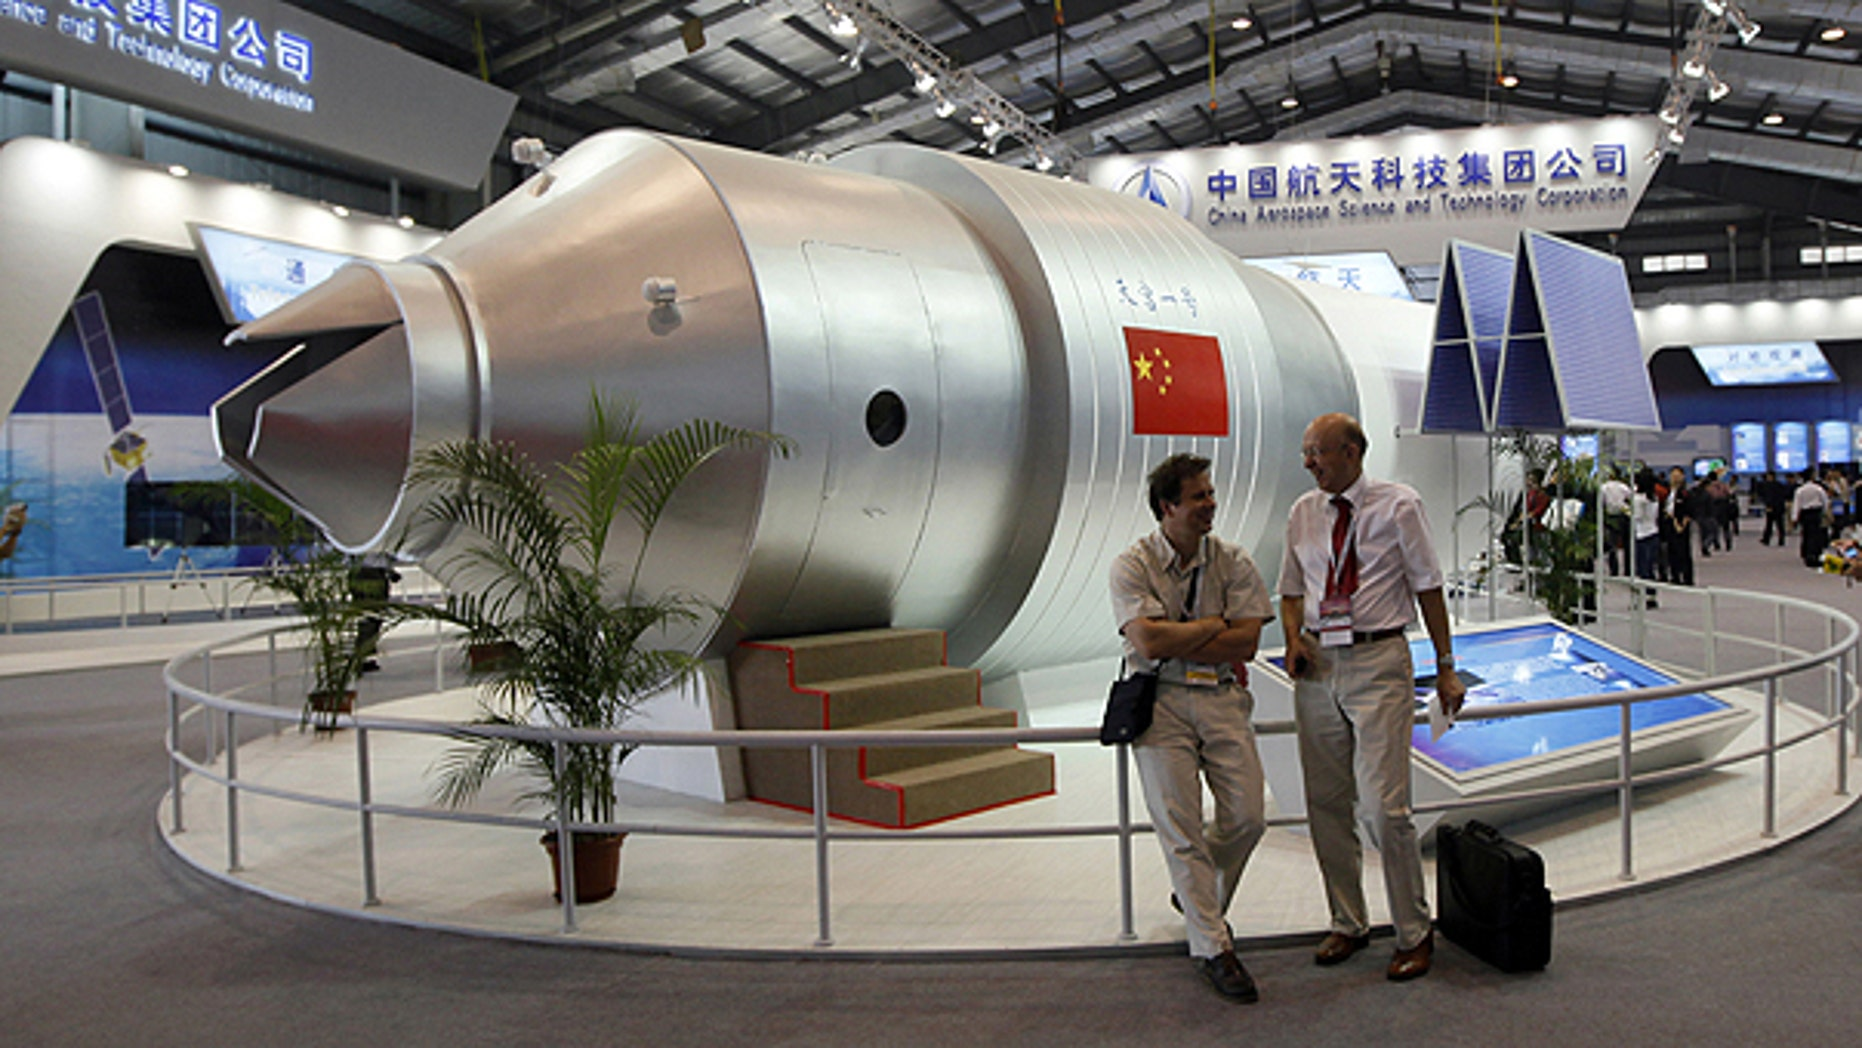 In this photo taken Nov. 16, 2010, visitors sit besides a model of Chinese made Tiangong 1 space station at the 8th China International Aviation and Aerospace Exhibition, known as Airshow China 2010, in Zhuhai city, south China, Guangdong province.